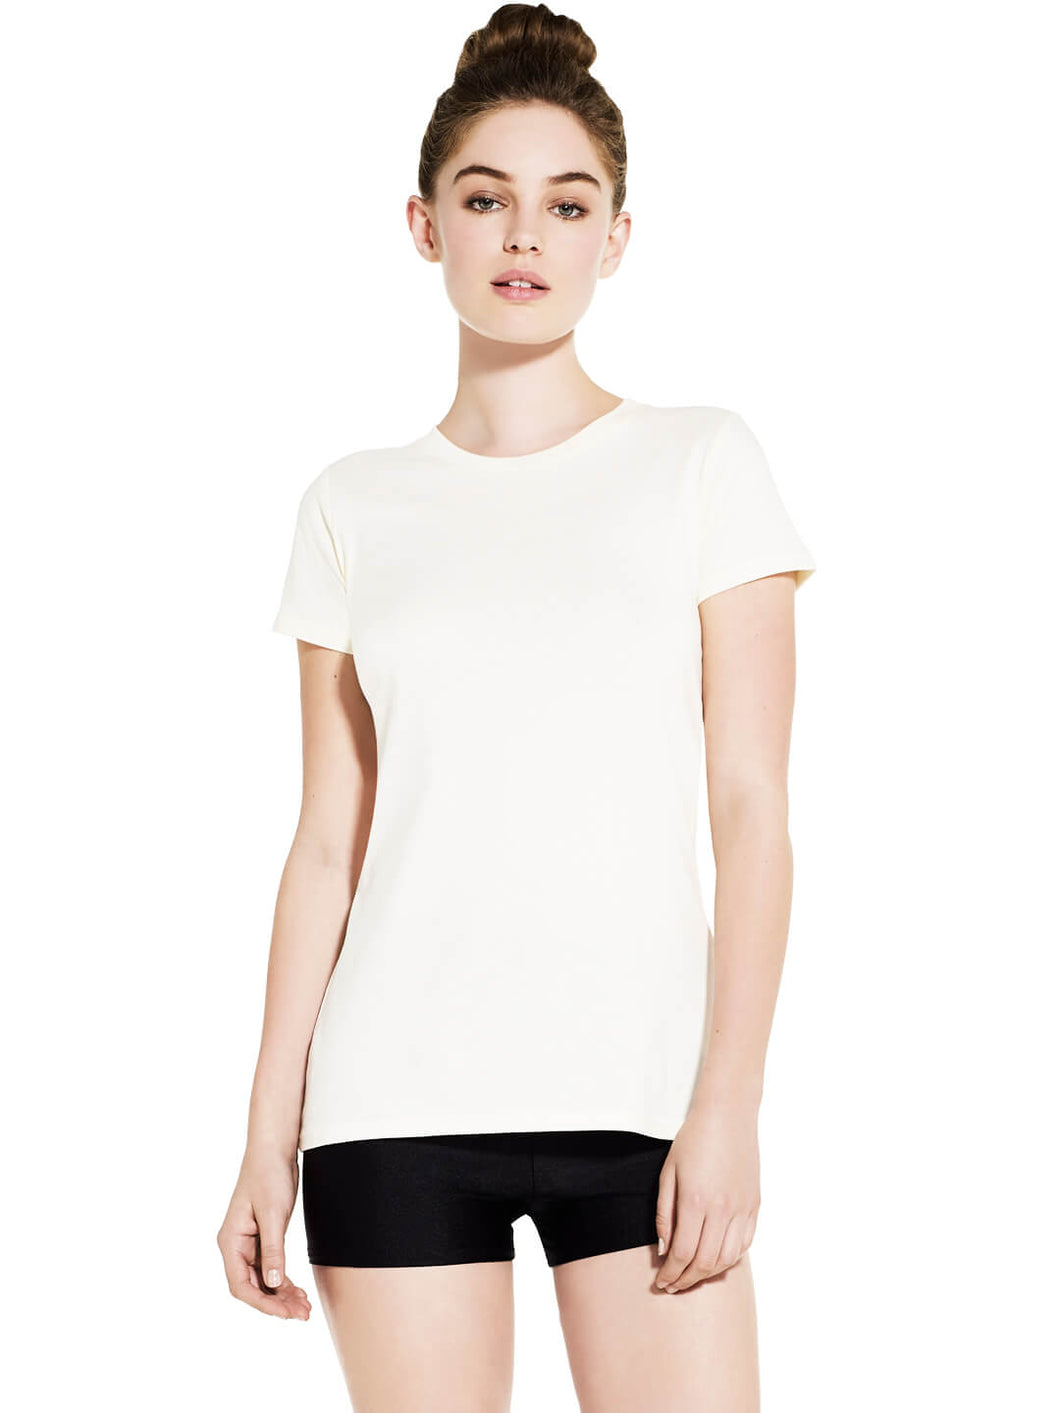 Organic Cotton Slim Fit T-shirt: Womens Earth Positive